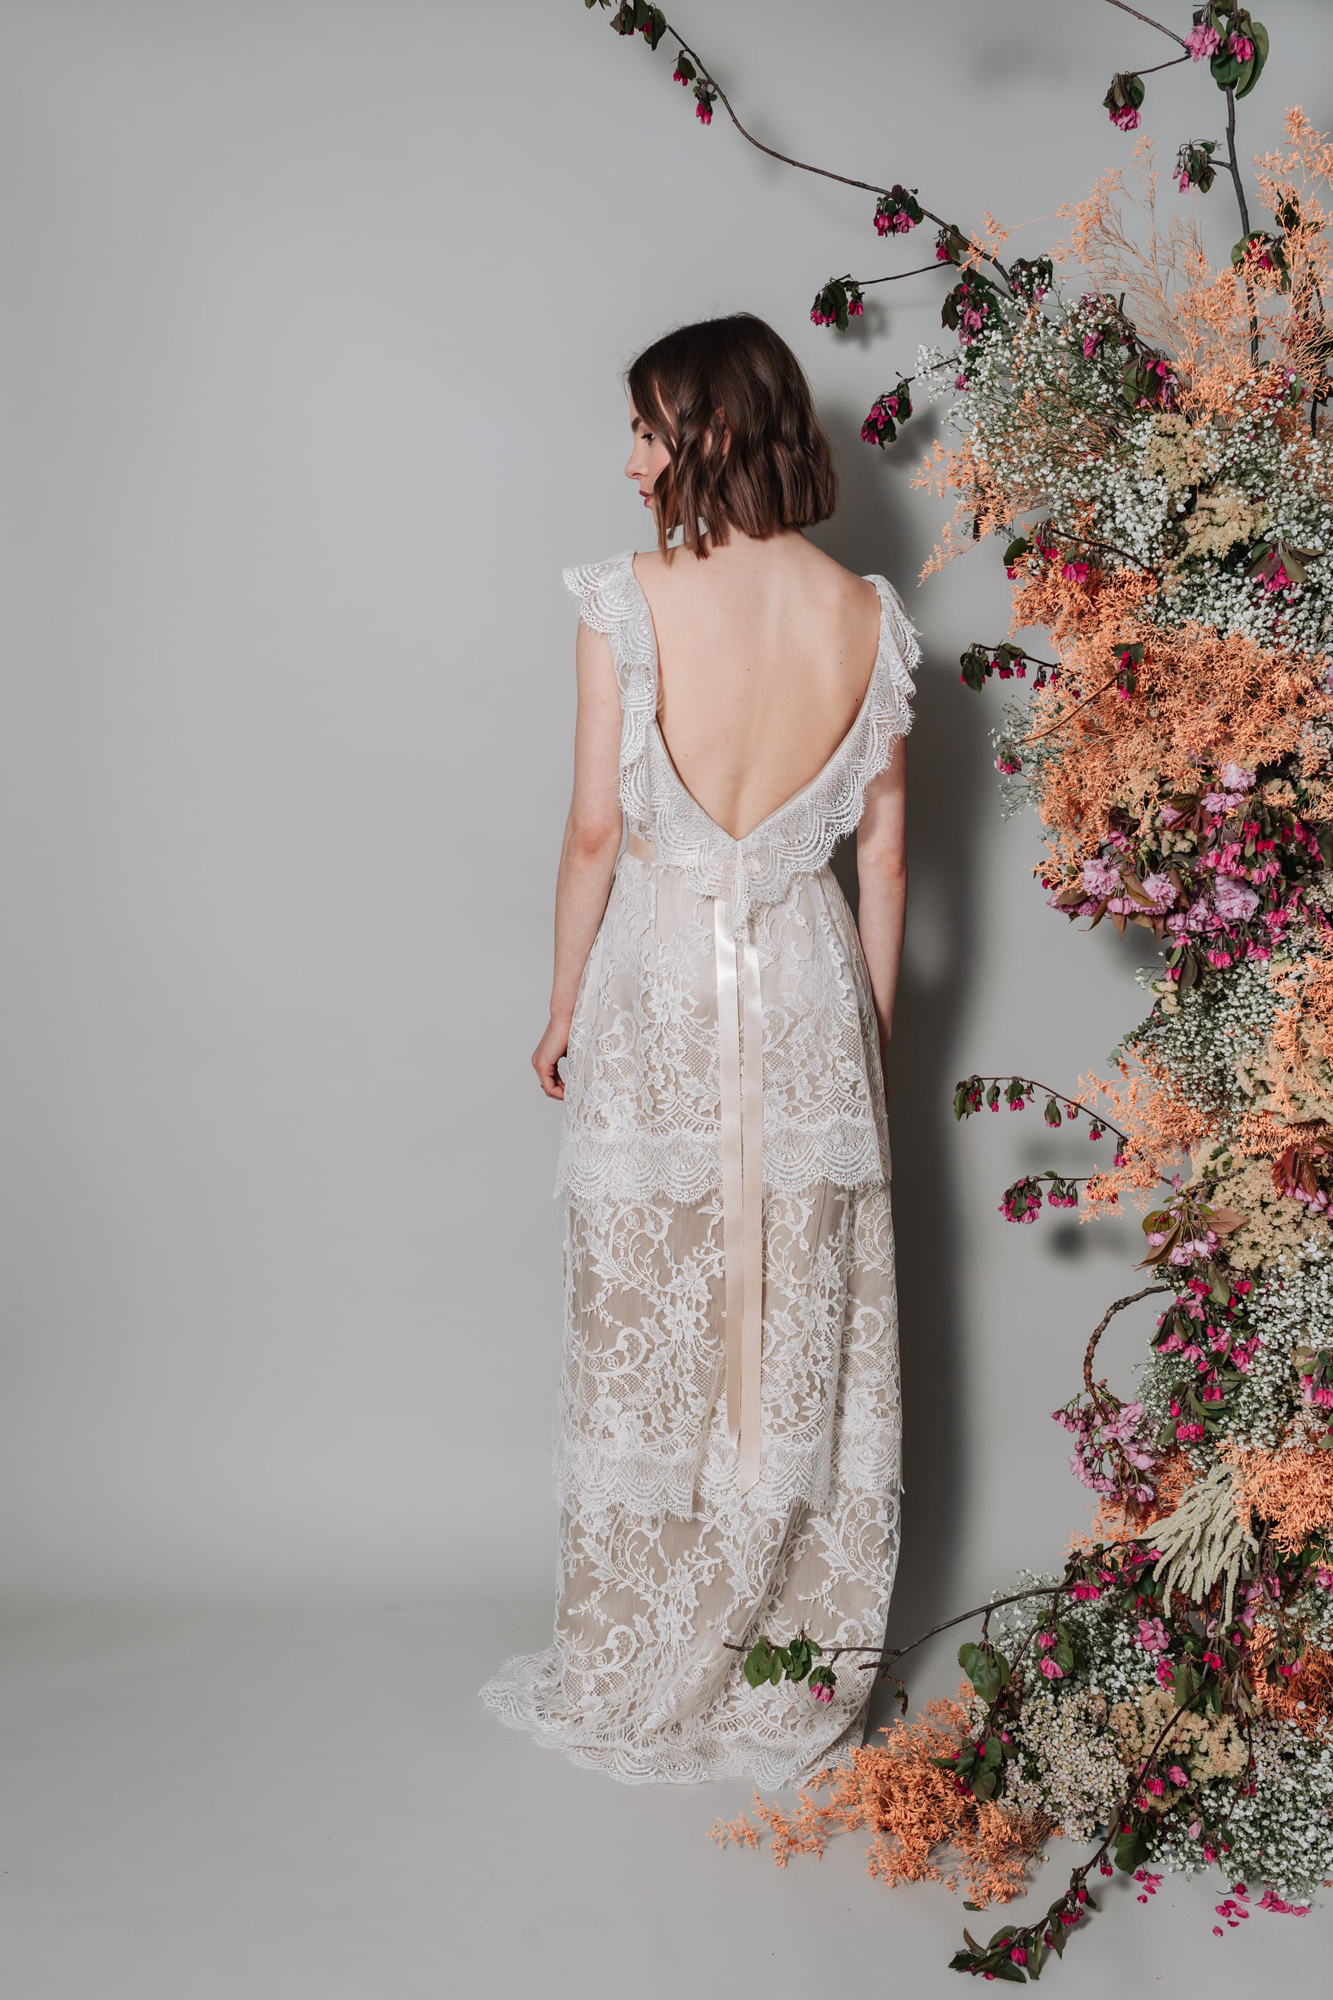 Kate-Beaumont-Sheffield-Wild-Lupin-Bohemian-Lace-Wedding-Gown-Tiered-Skirt-9.jpg